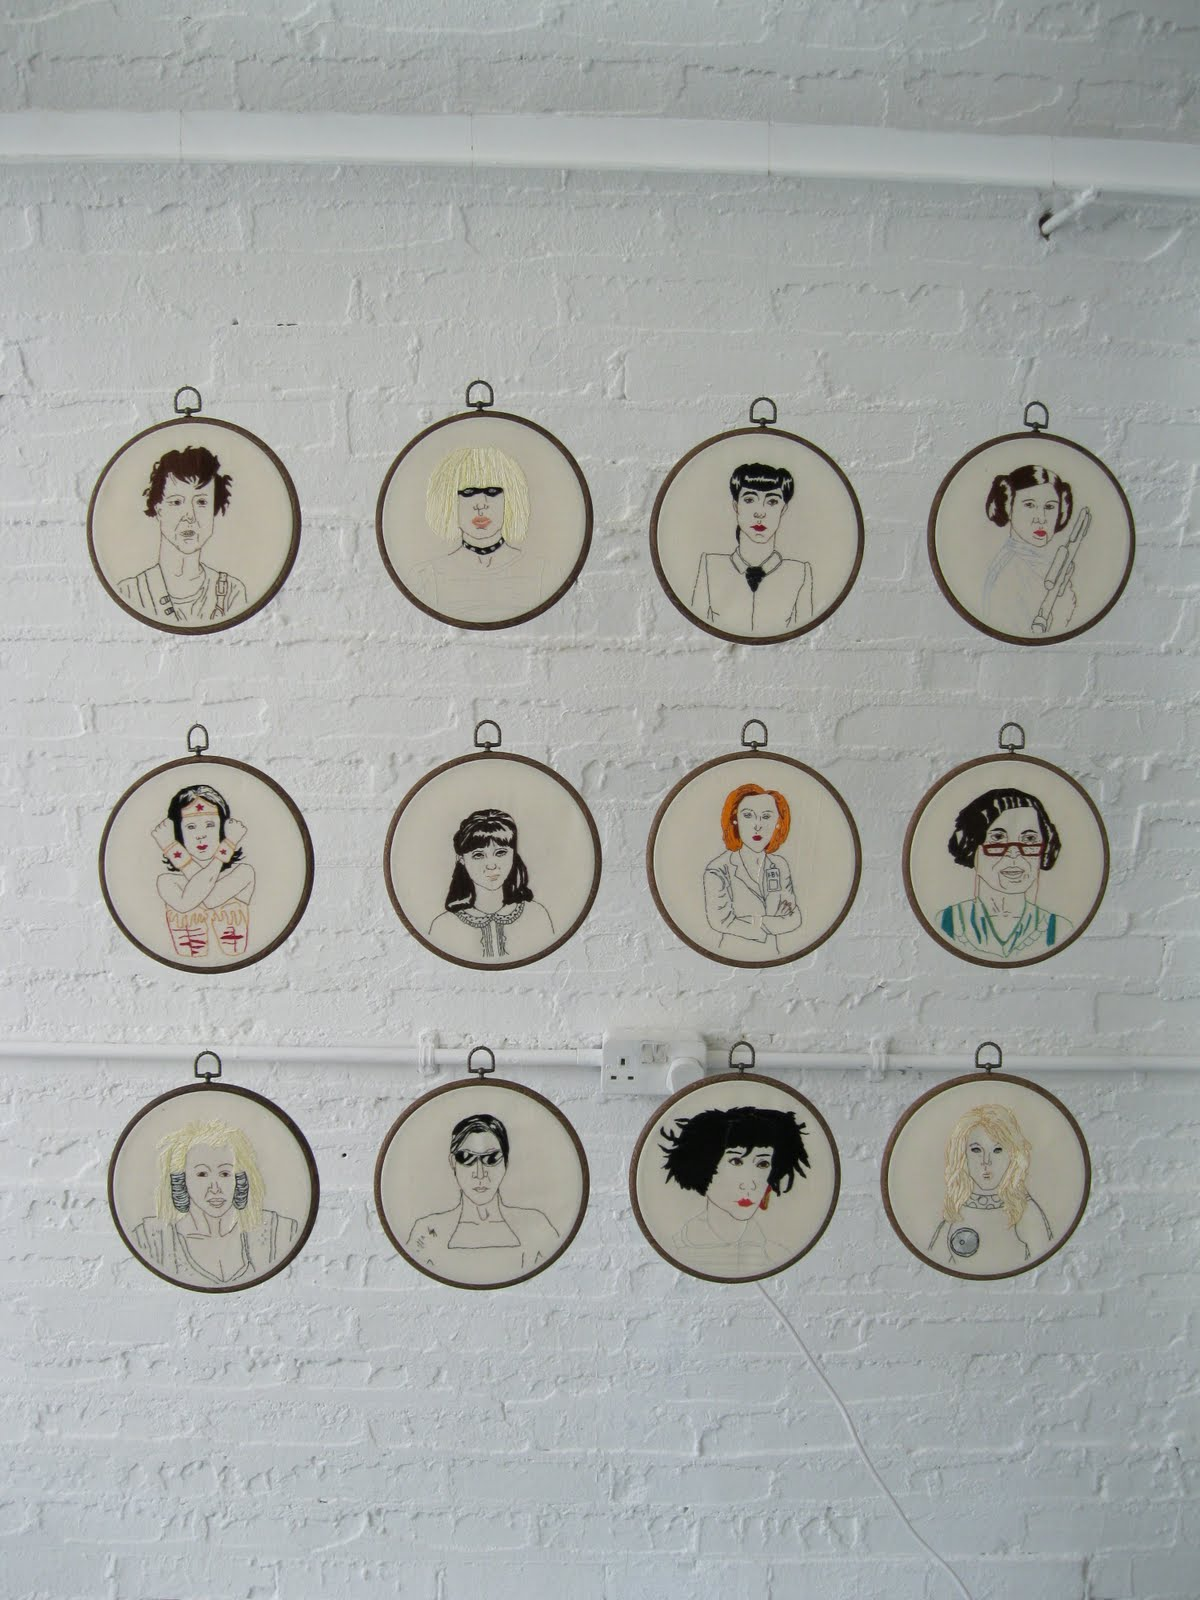 Three Men & a Baby Embroidery & The Terrifically Twee Stitchings of Reena Makwana